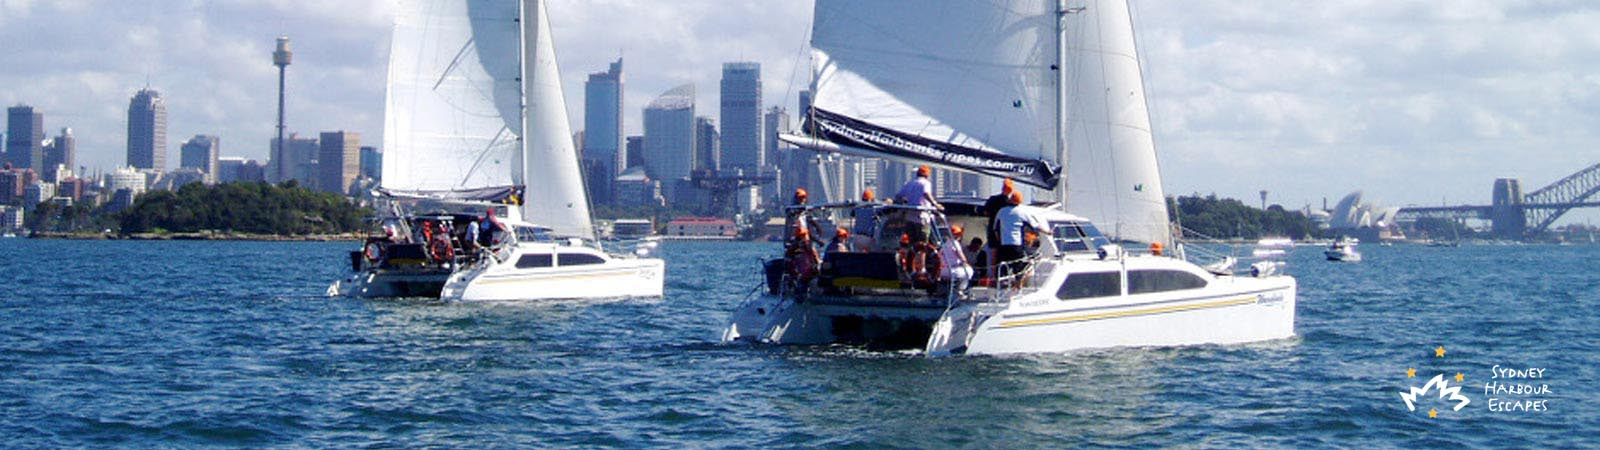 Corporate Sailing Regattas and Hands on Sailing Banner